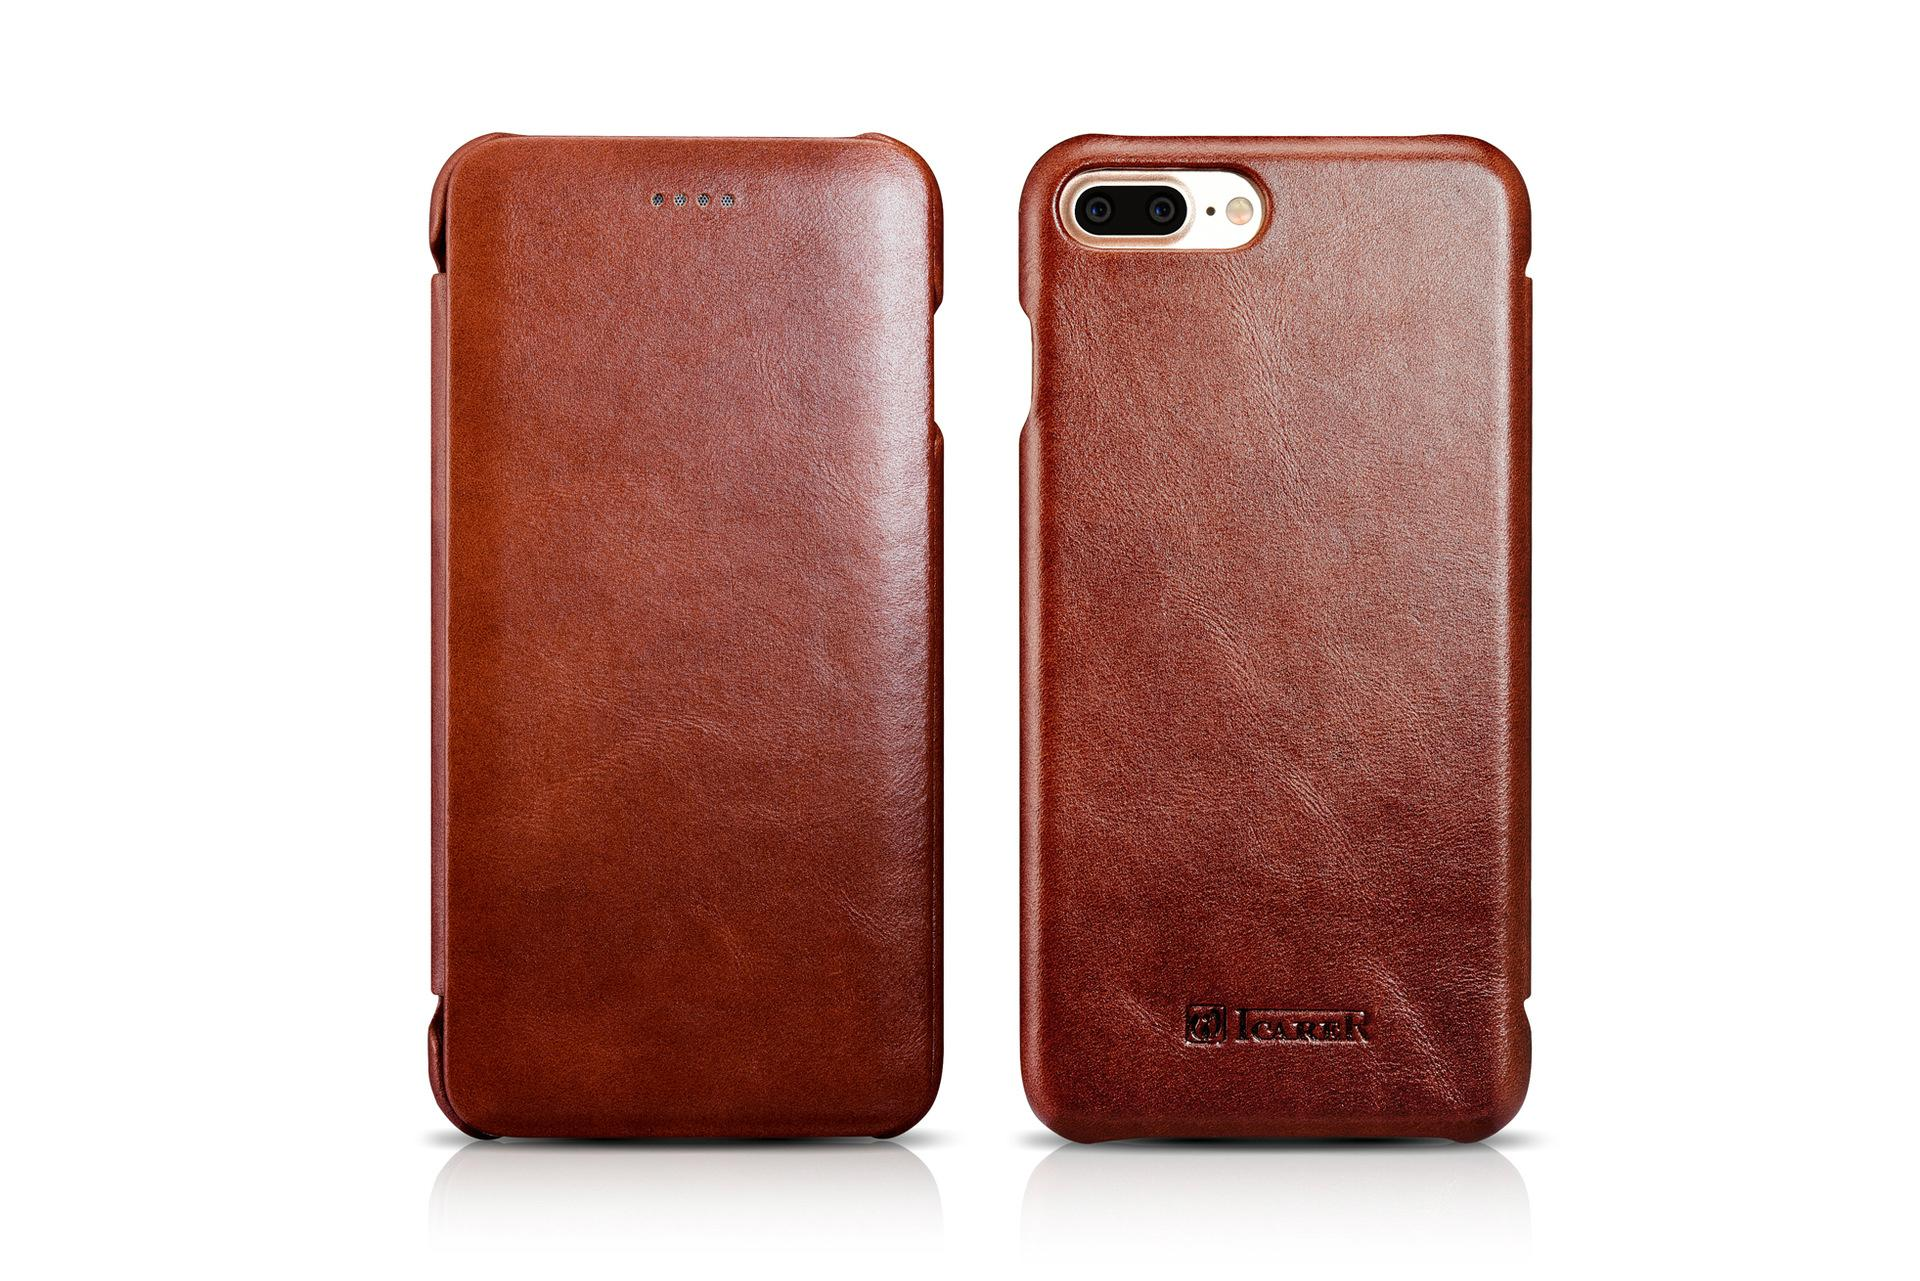 iCarer iPhone 7 Plus Curved Edge Vintage Series Genuine Leather Case 2